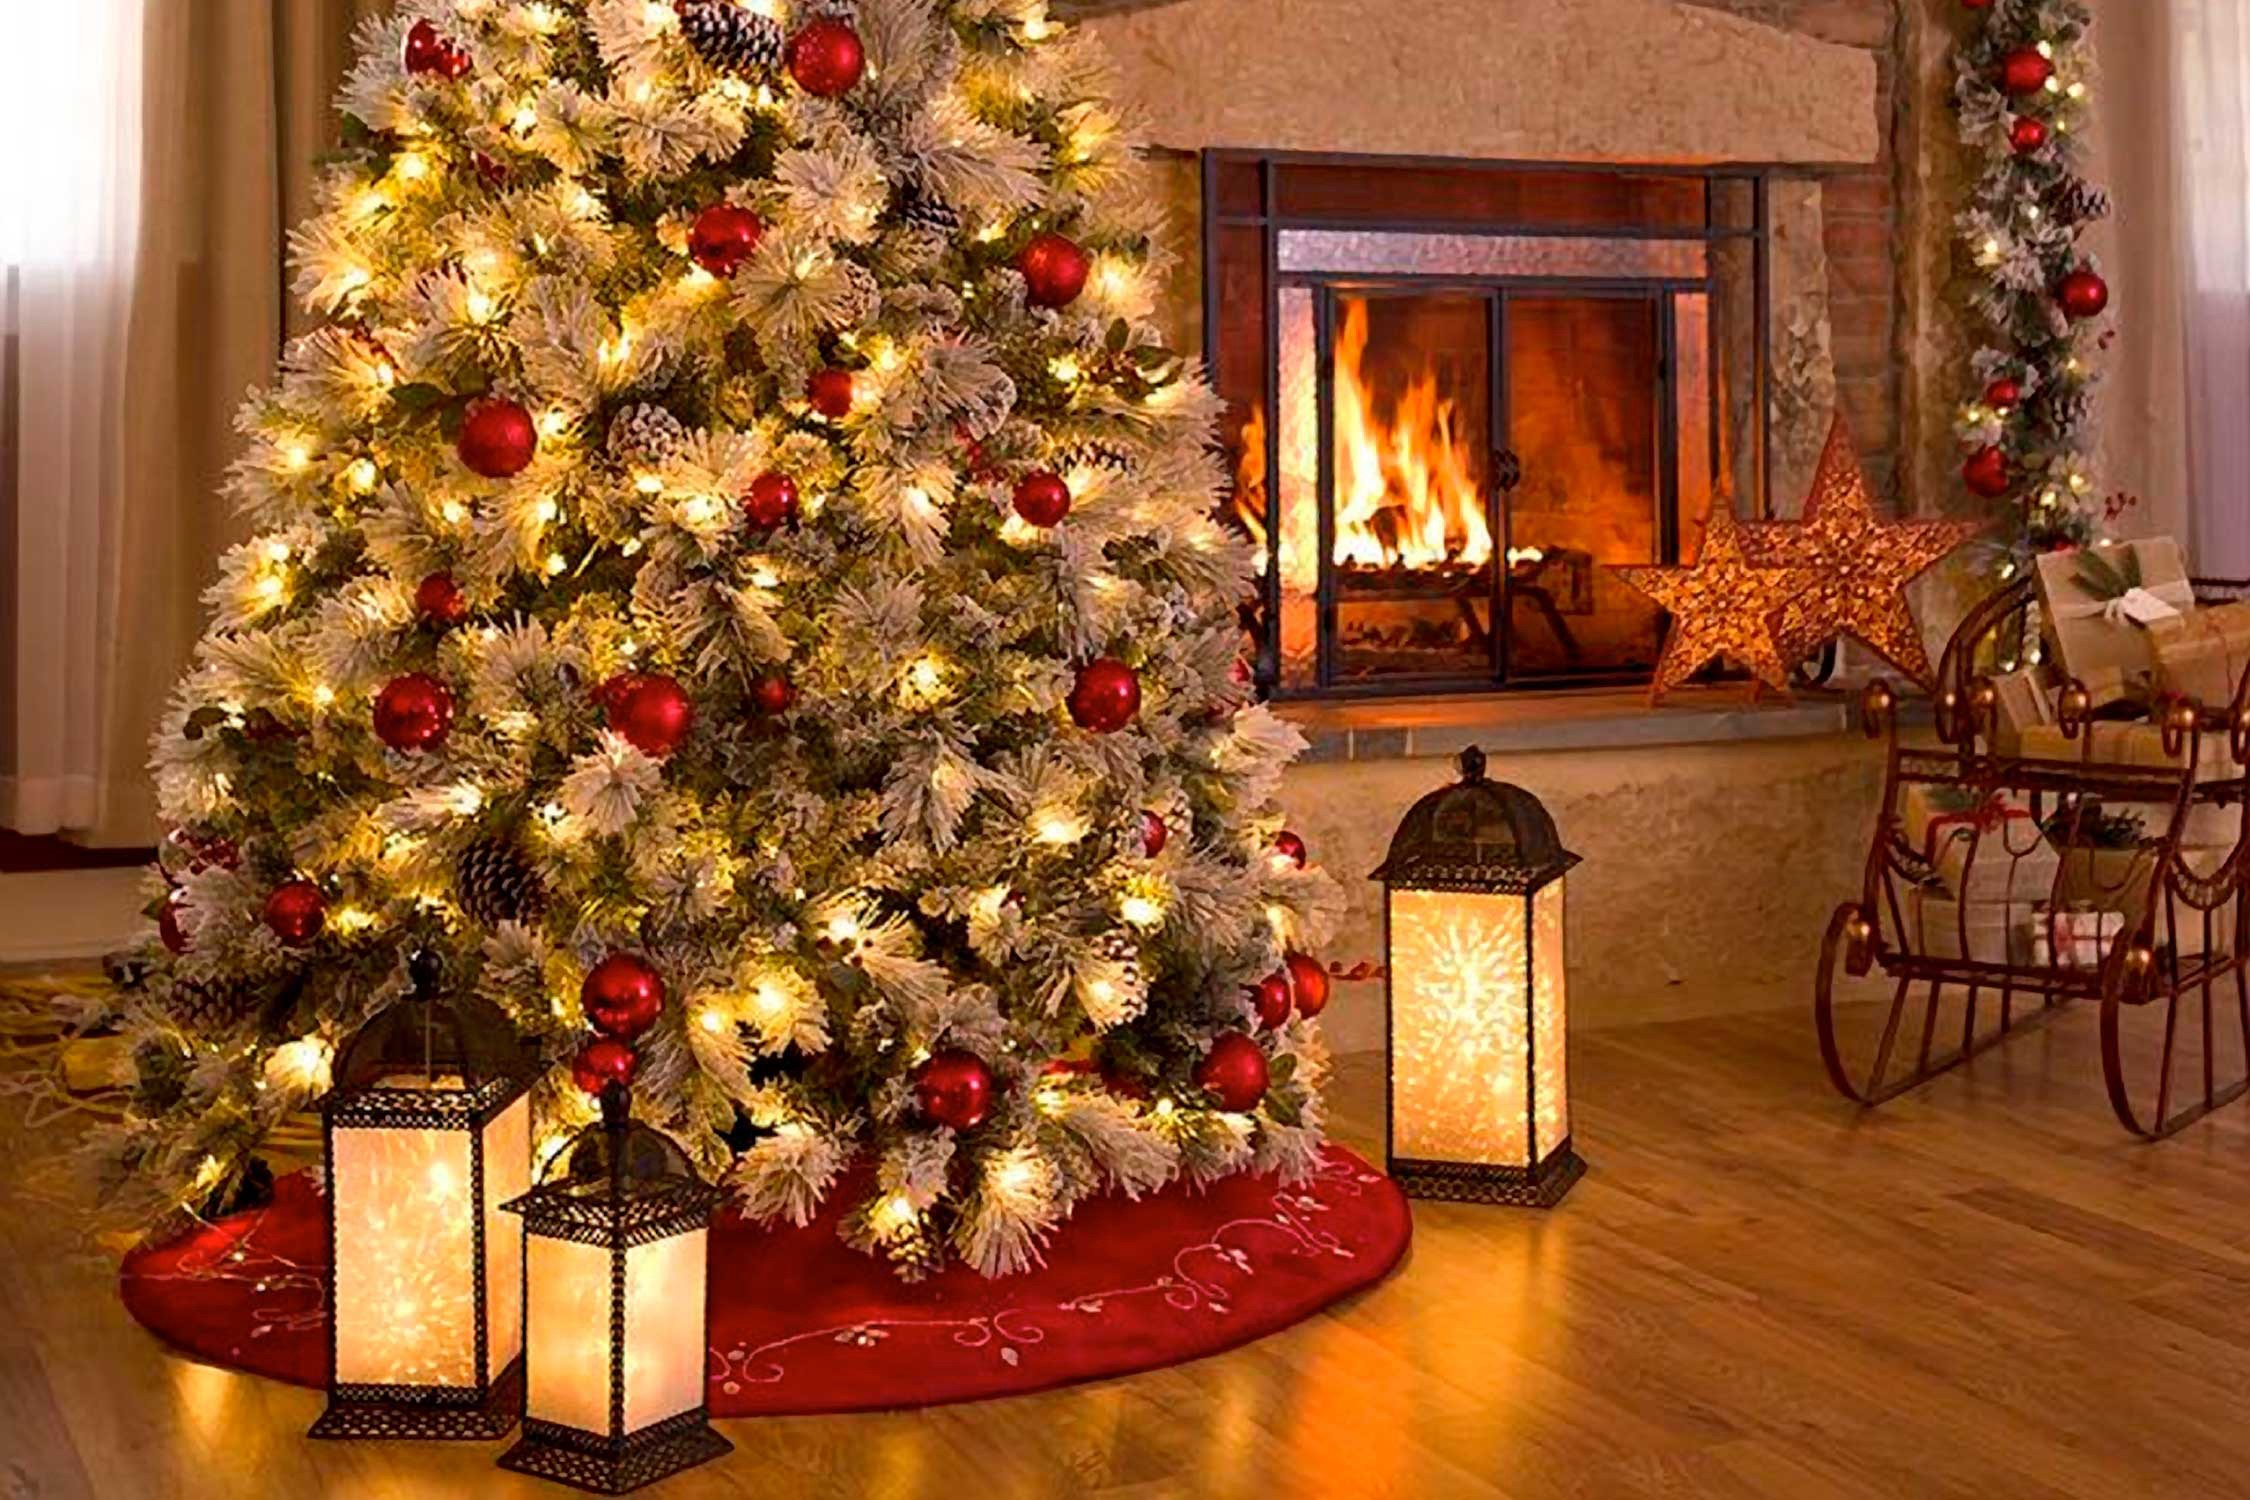 Cleaner Air for Christmas? Then, a Christmas Tree May Not ...